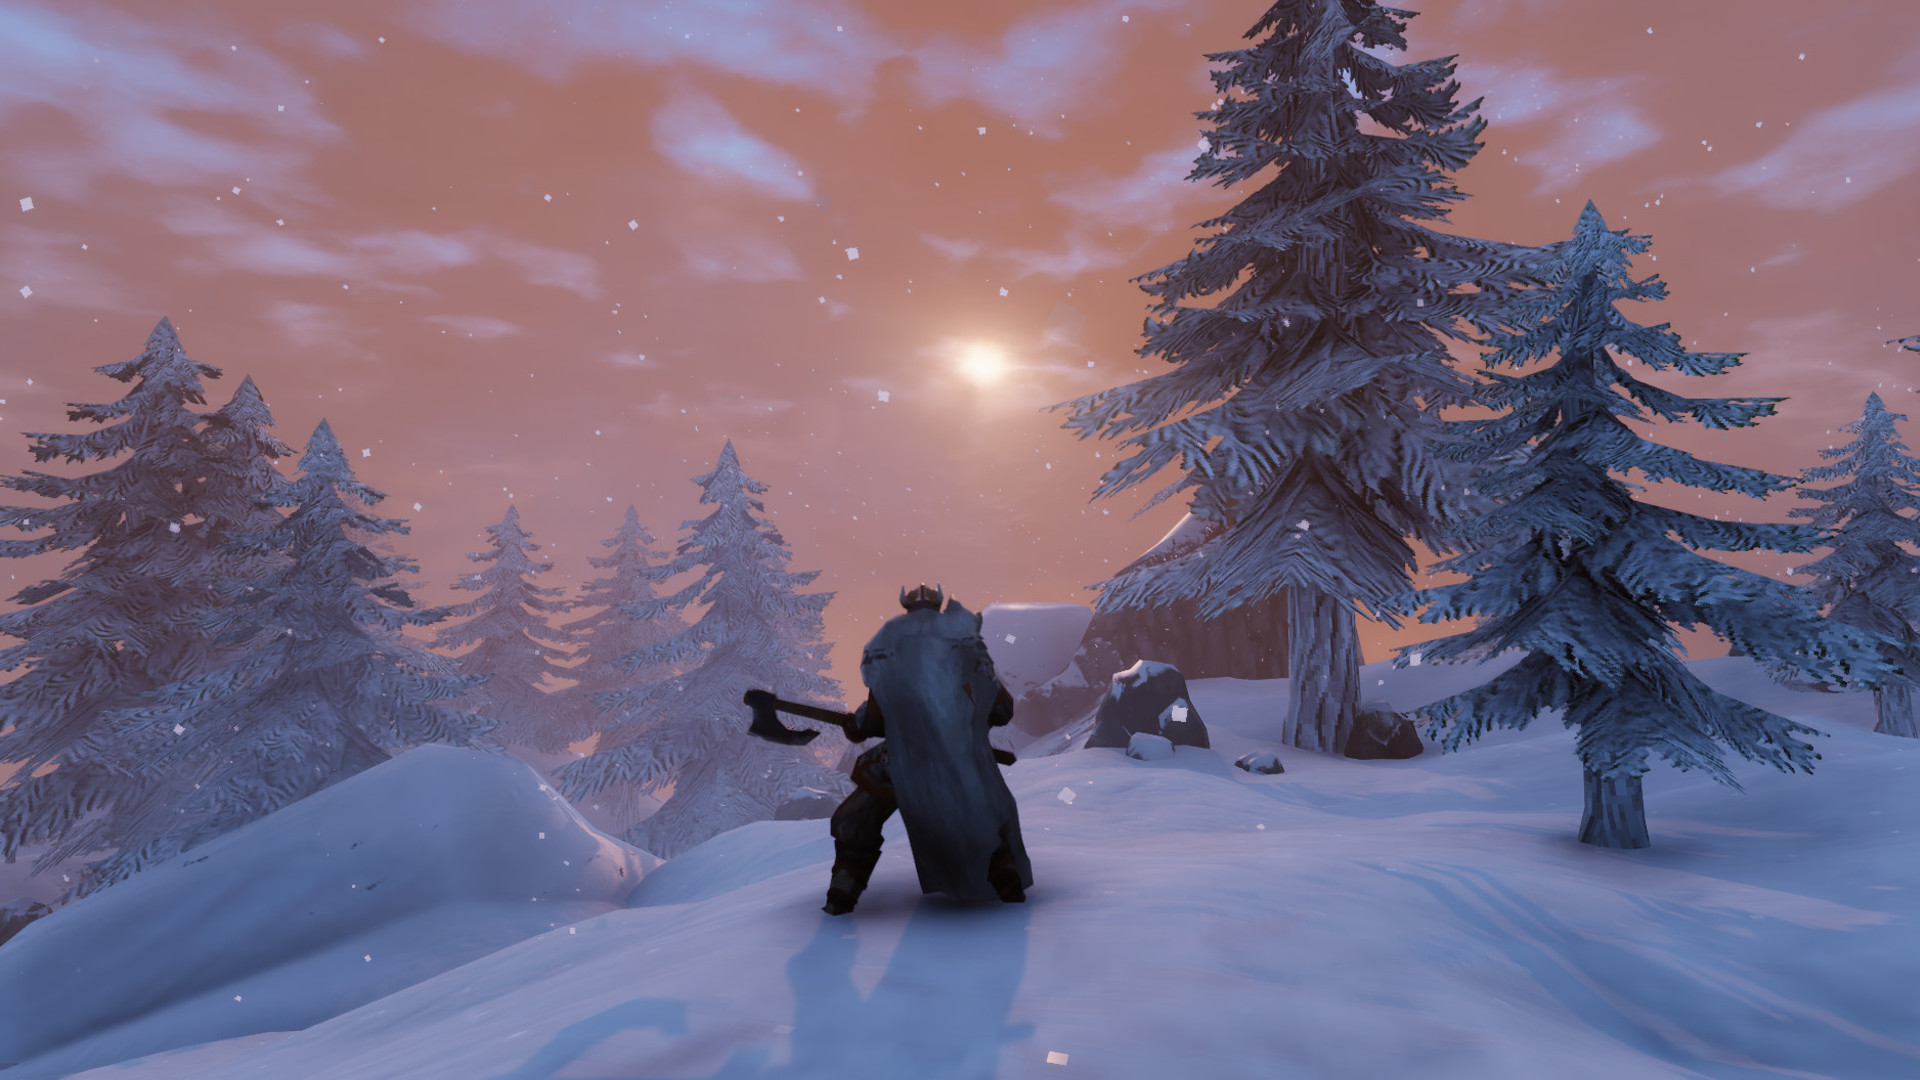 Valheim-guide-how-to-find-silver-wolf-armor-frost-resistance-wishbone-mountains-biome-.jpg